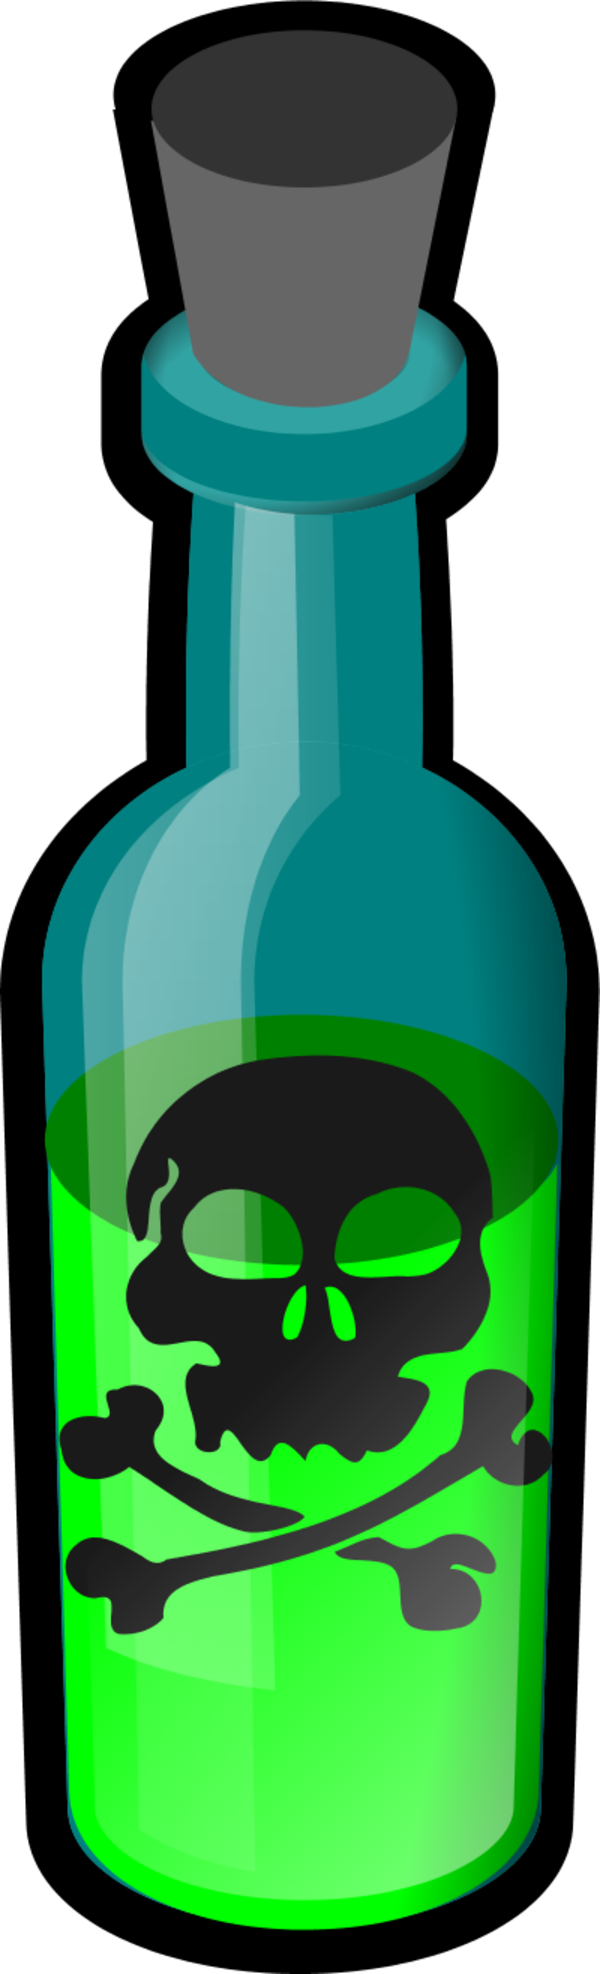 Poison clipart poison control. Free content skull and